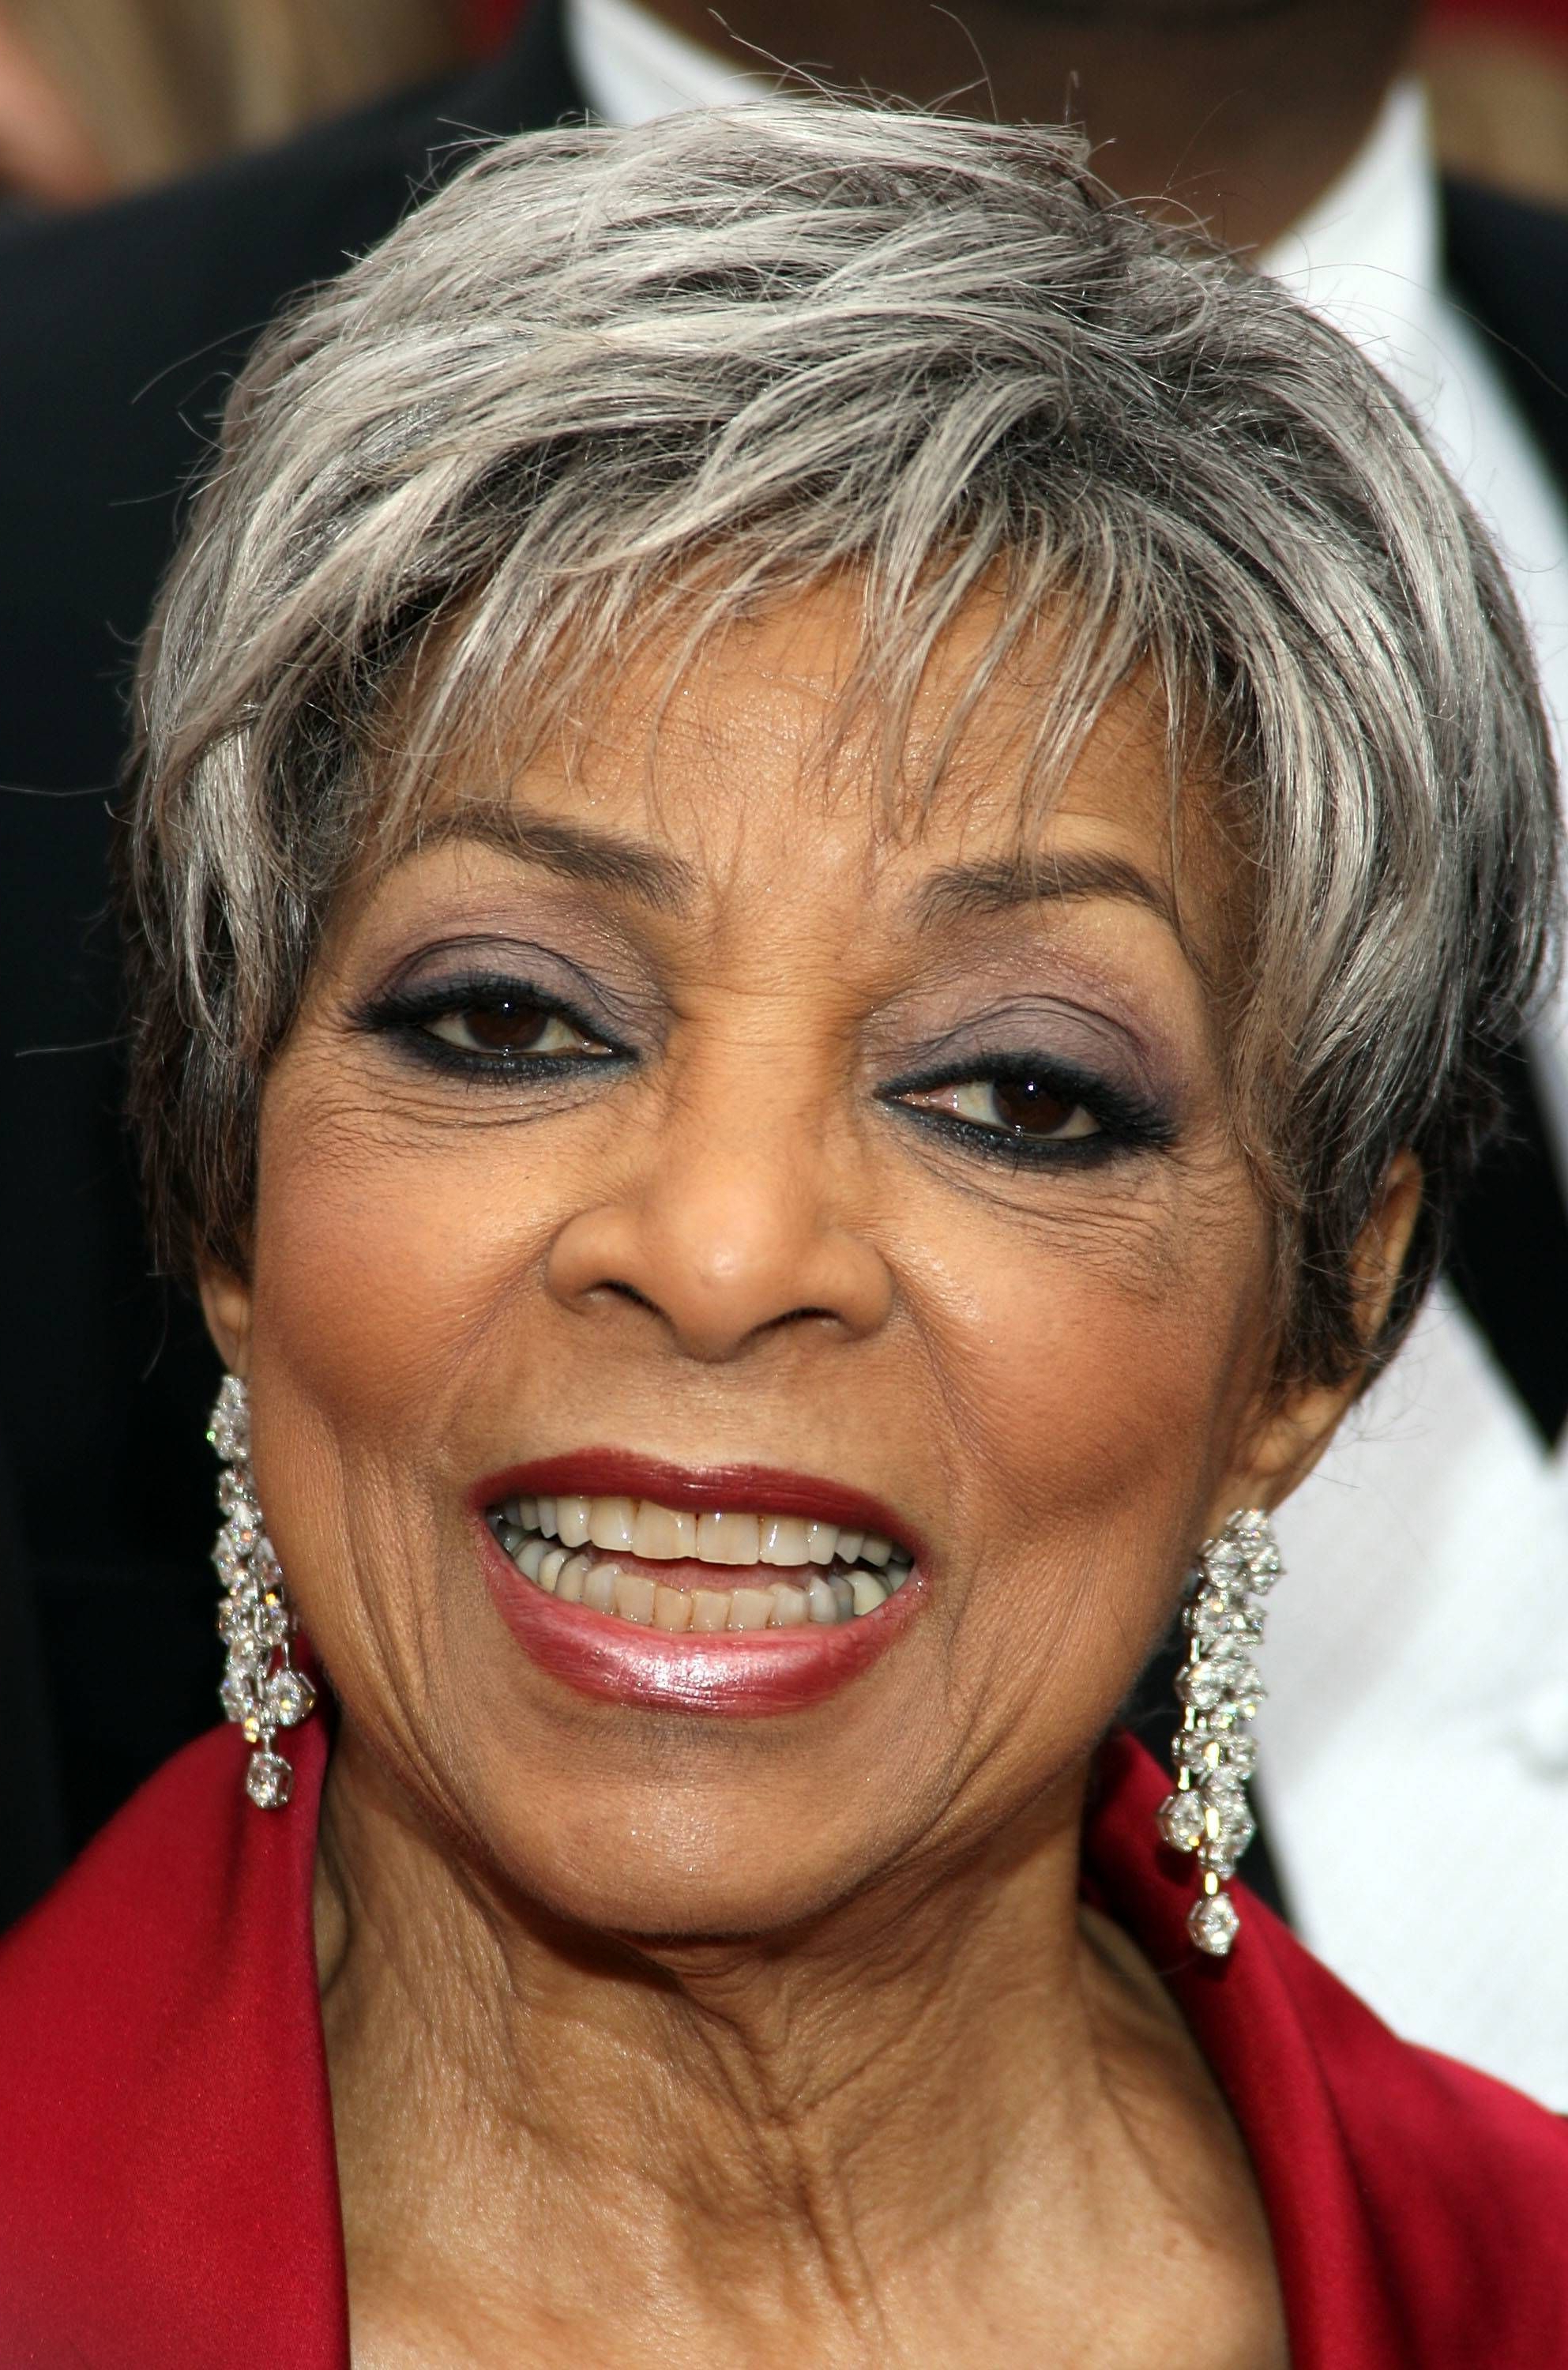 Short Hairstyle : Short Haircuts For Year Old Black Woman Styles With Short Hairstyles For Black Women With Gray Hair (View 15 of 25)